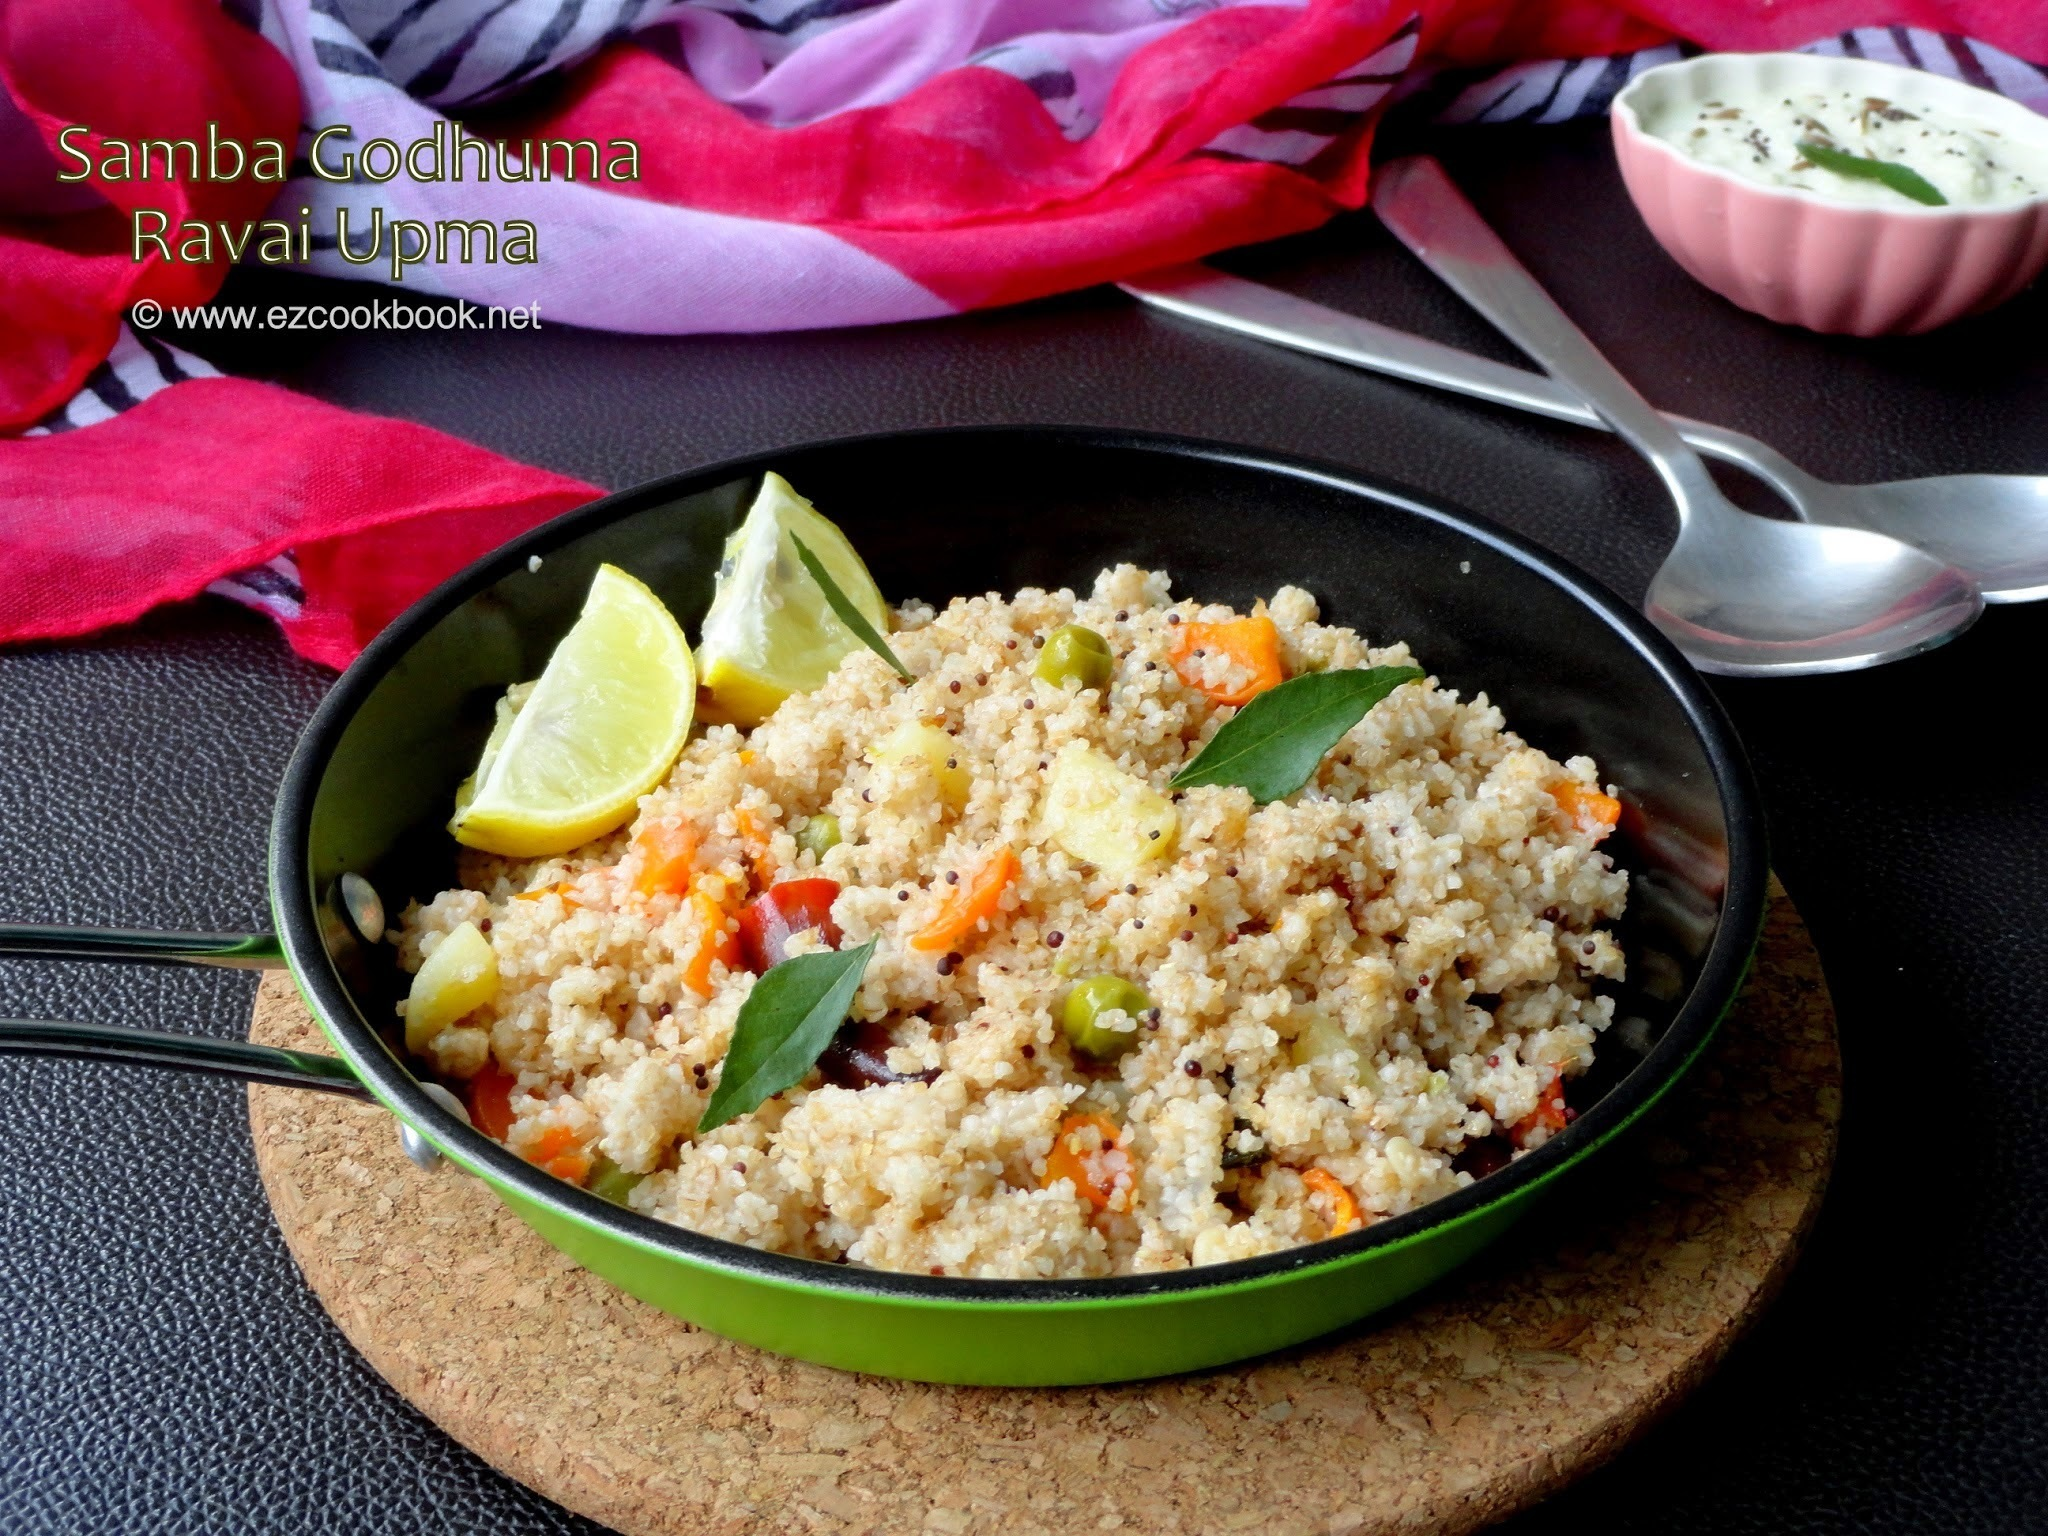 Samba Godhuma Ravai Vegetable Upma | Samba Wheat Rava Upma Recipe